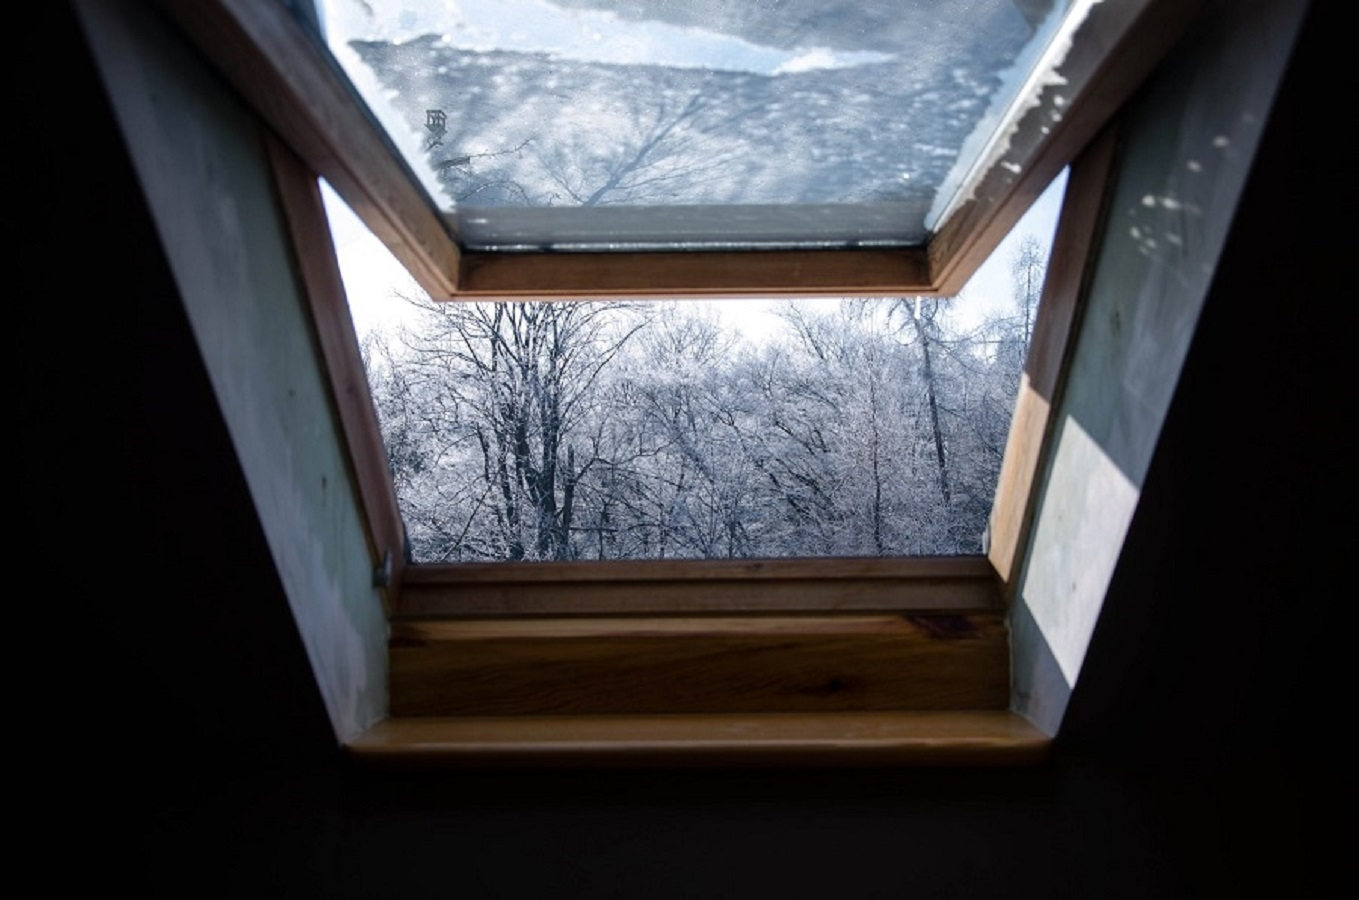 Skylights windows Renew Home Window Design To Give An Up-To-Date Look To Your Home